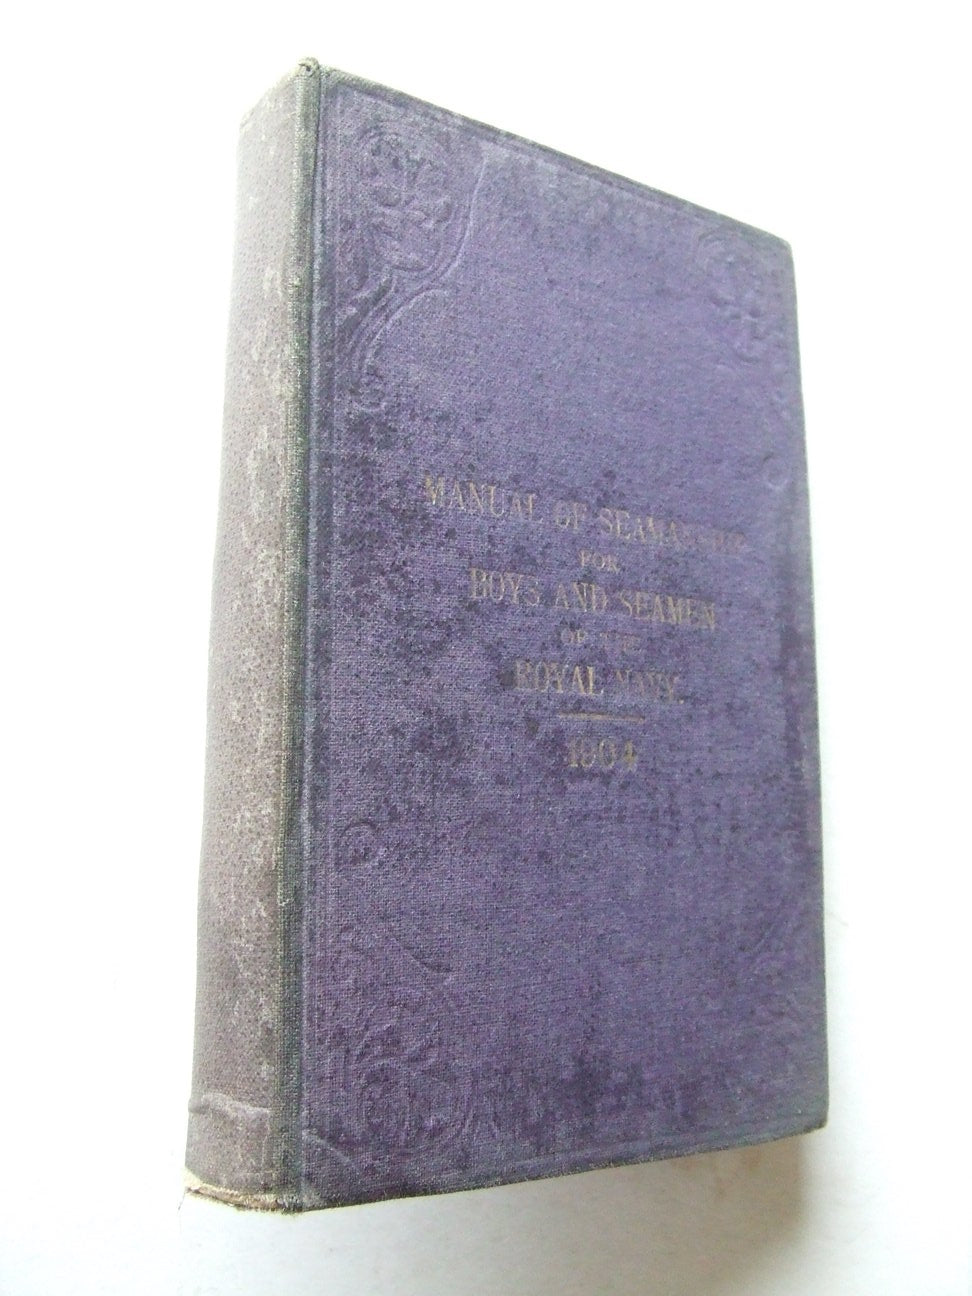 Manual of Seamanship for Boys and Seamen of the Royal Navy 1904